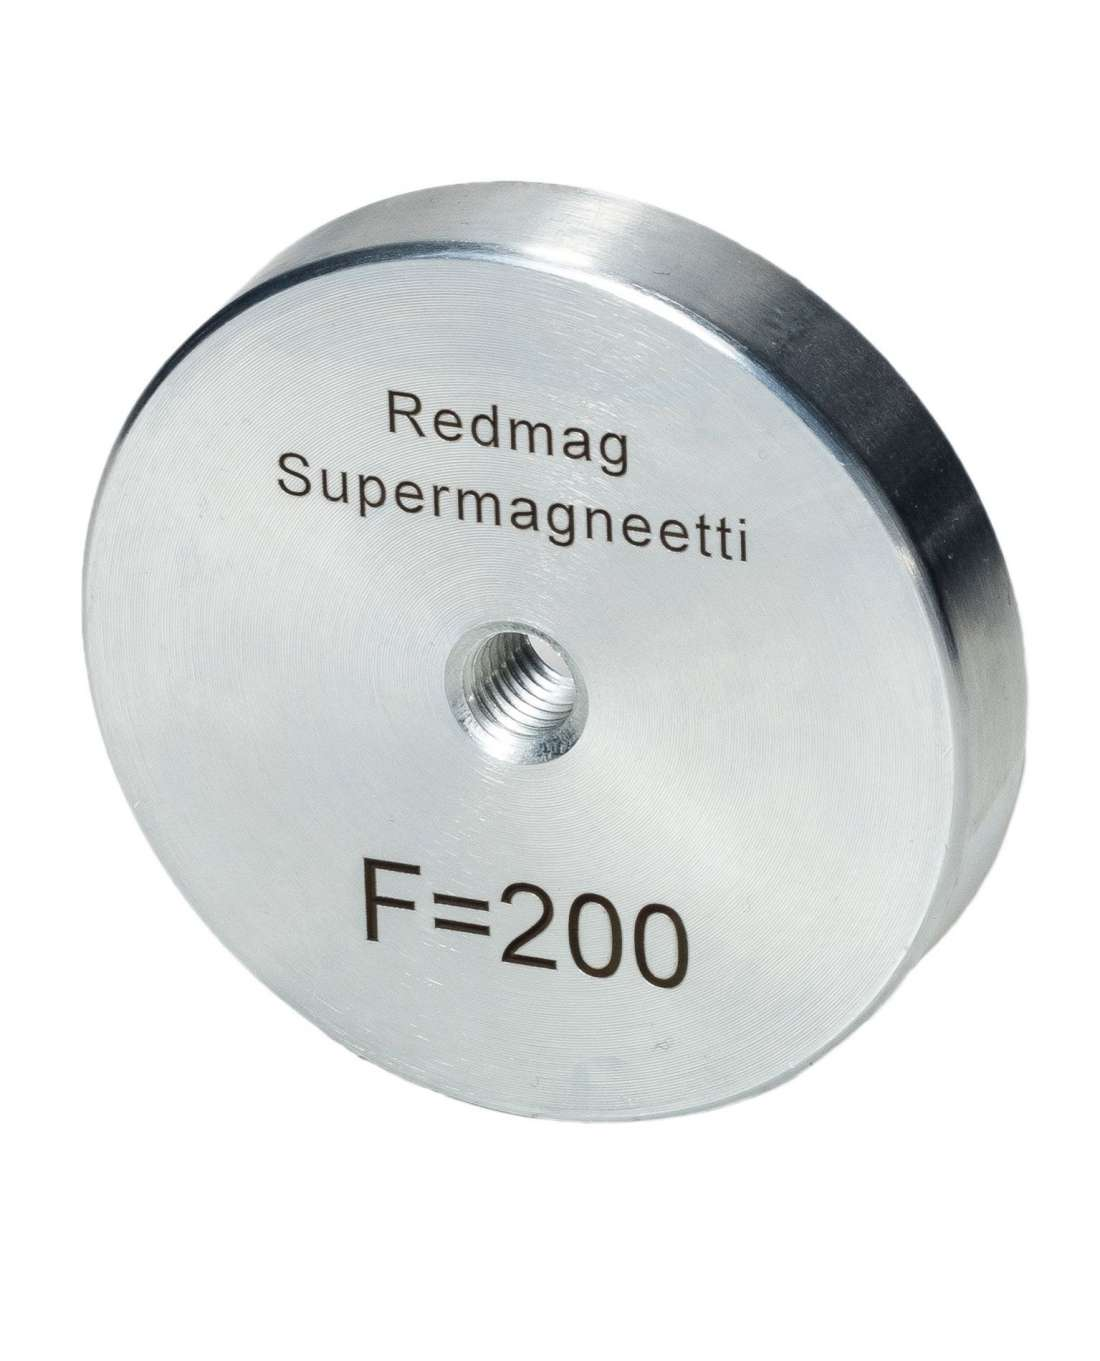 Redmag Supermagneetti F200 (200 kg, 75 mm)